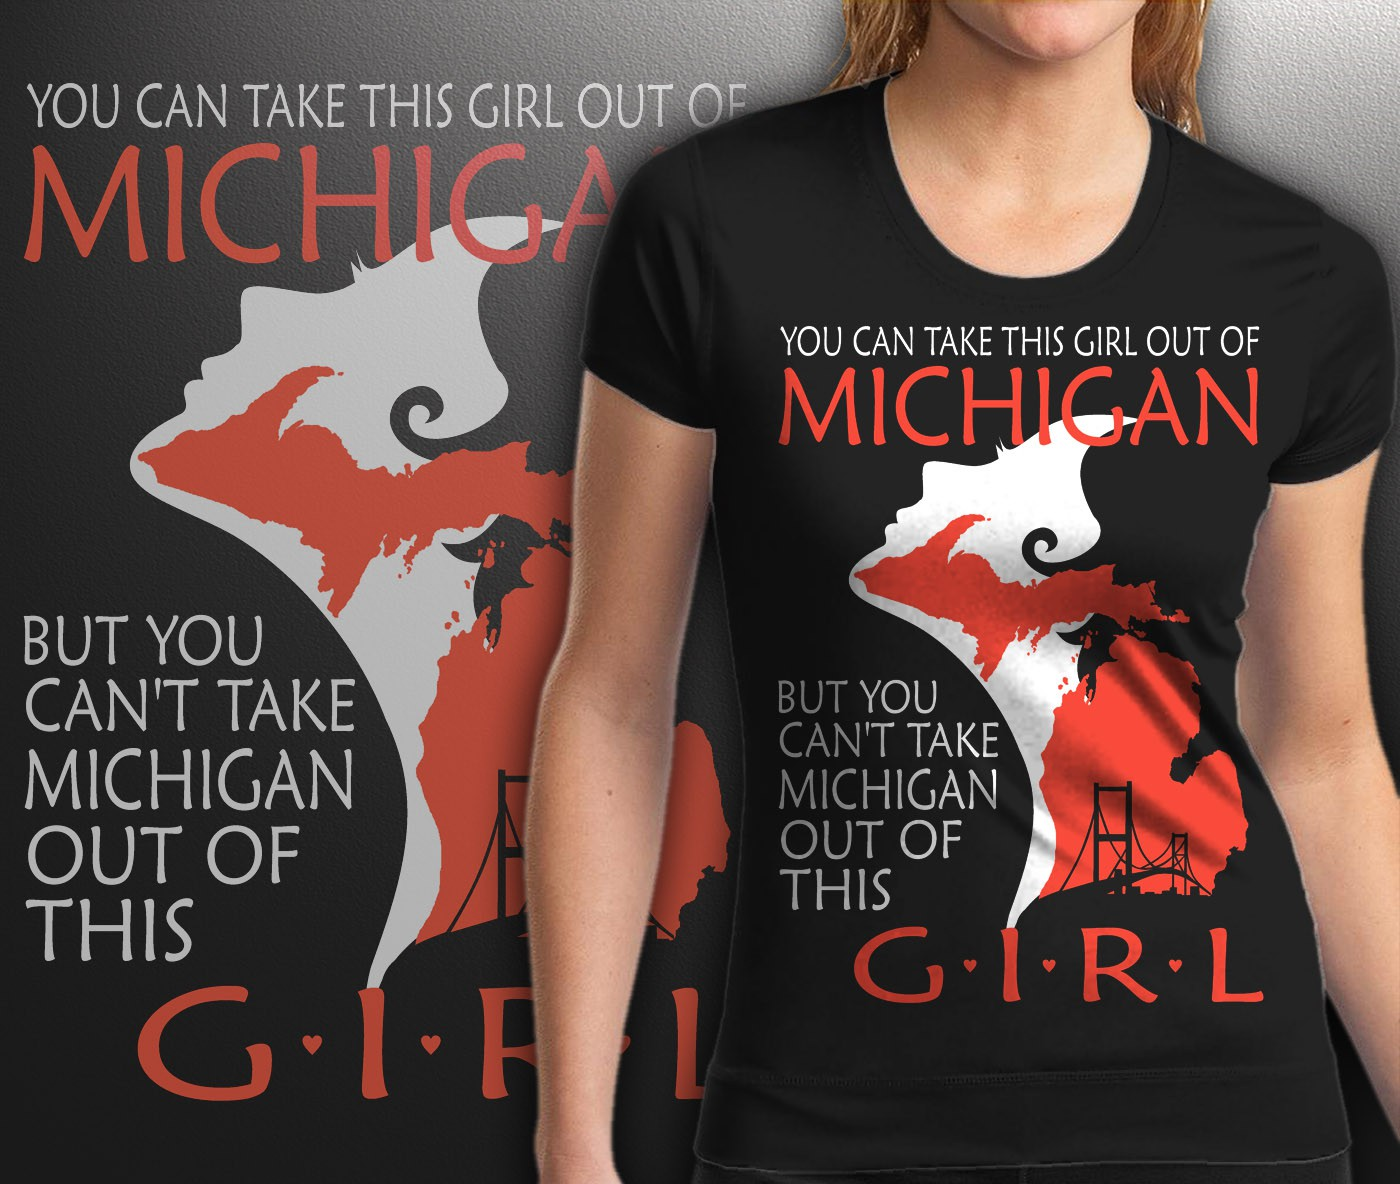 Michigan girl tshirt - WINNER GUARANTEED